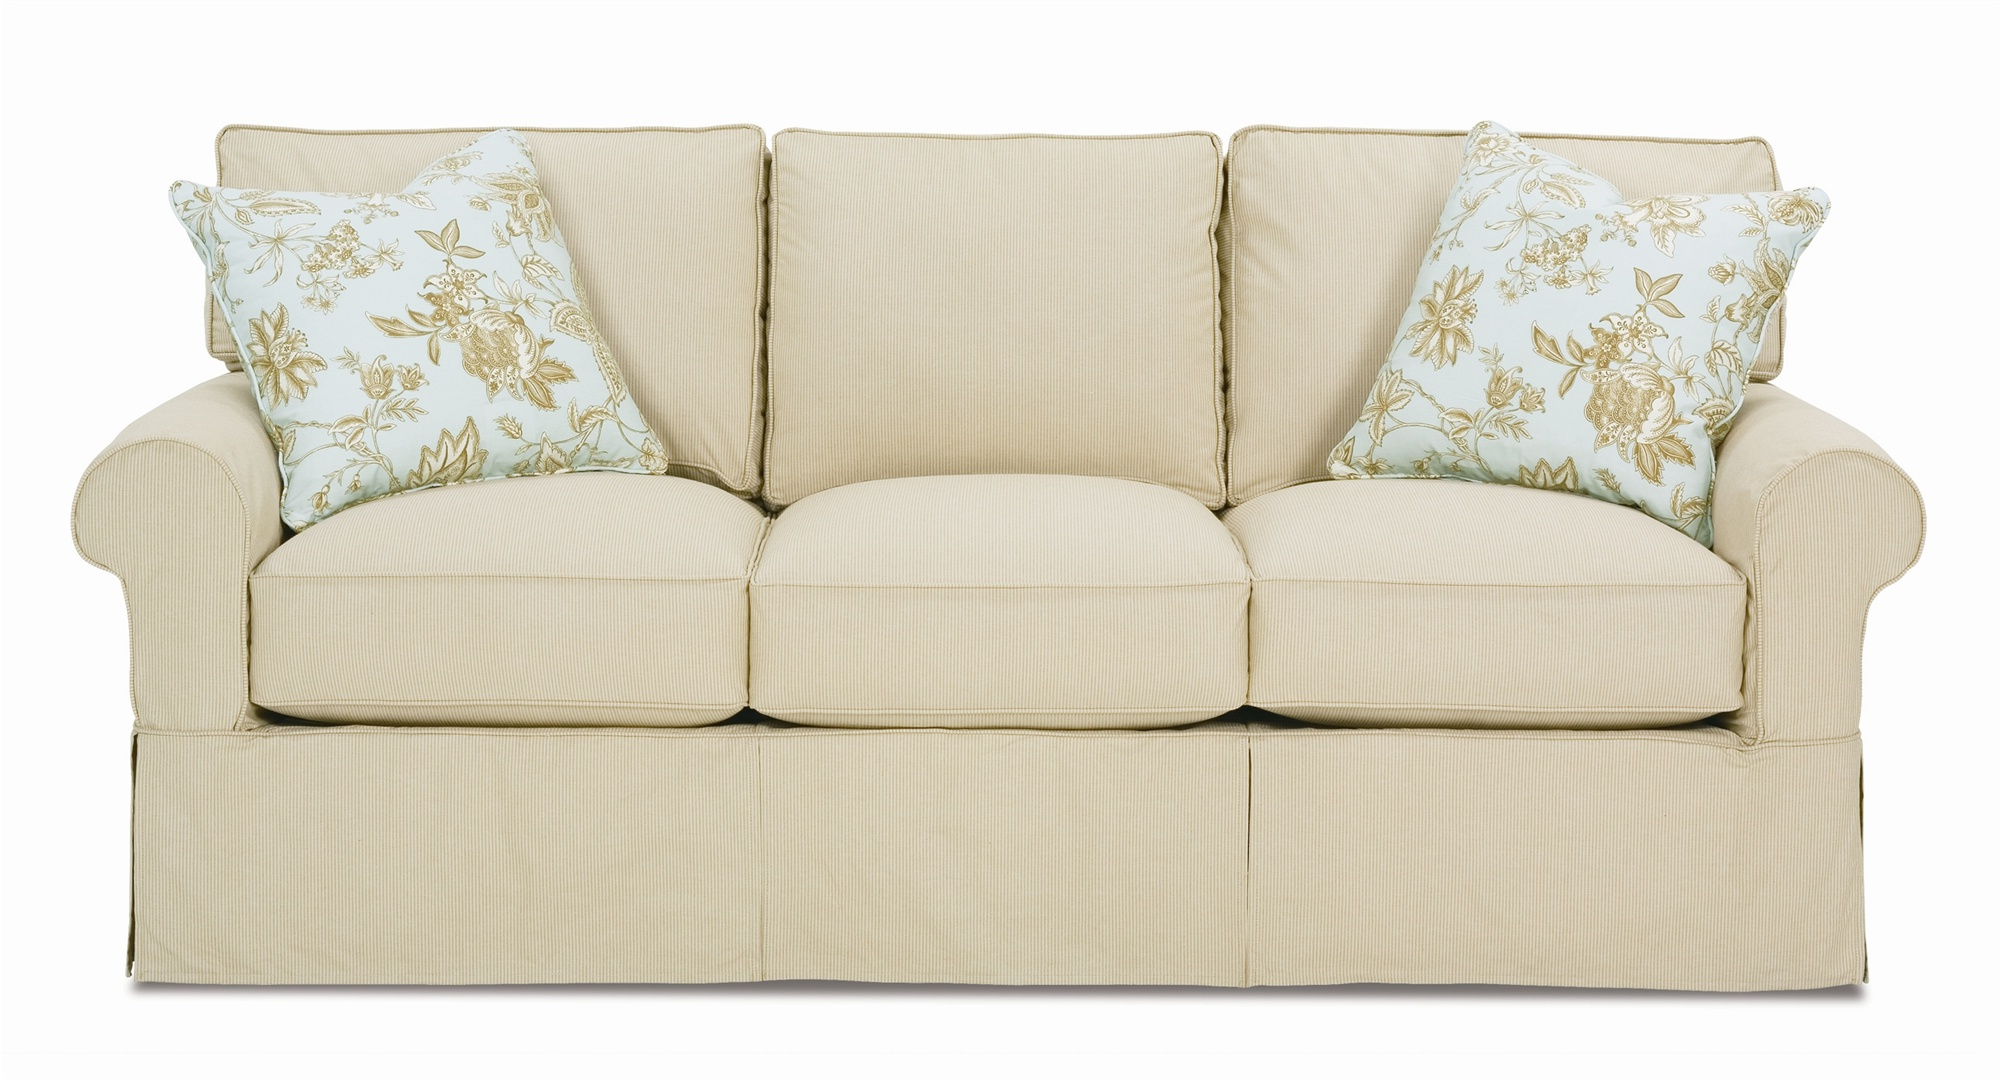 Chair Slipcovers Regarding Well Known Escondido Sofa Chairs (Gallery 17 of 20)